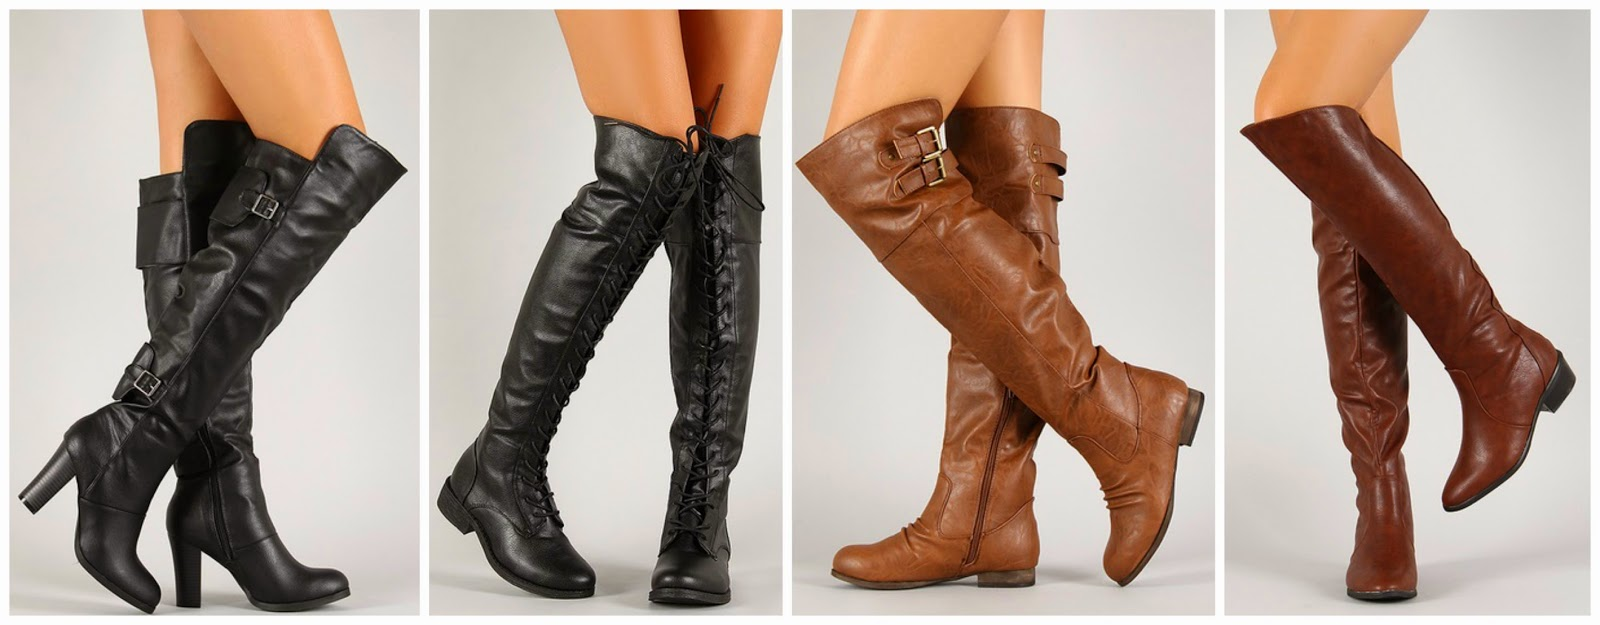 fd44f8e9fb4 Wishlist  31 pairs of Thigh High Boots under  50 from UrbanOG ...